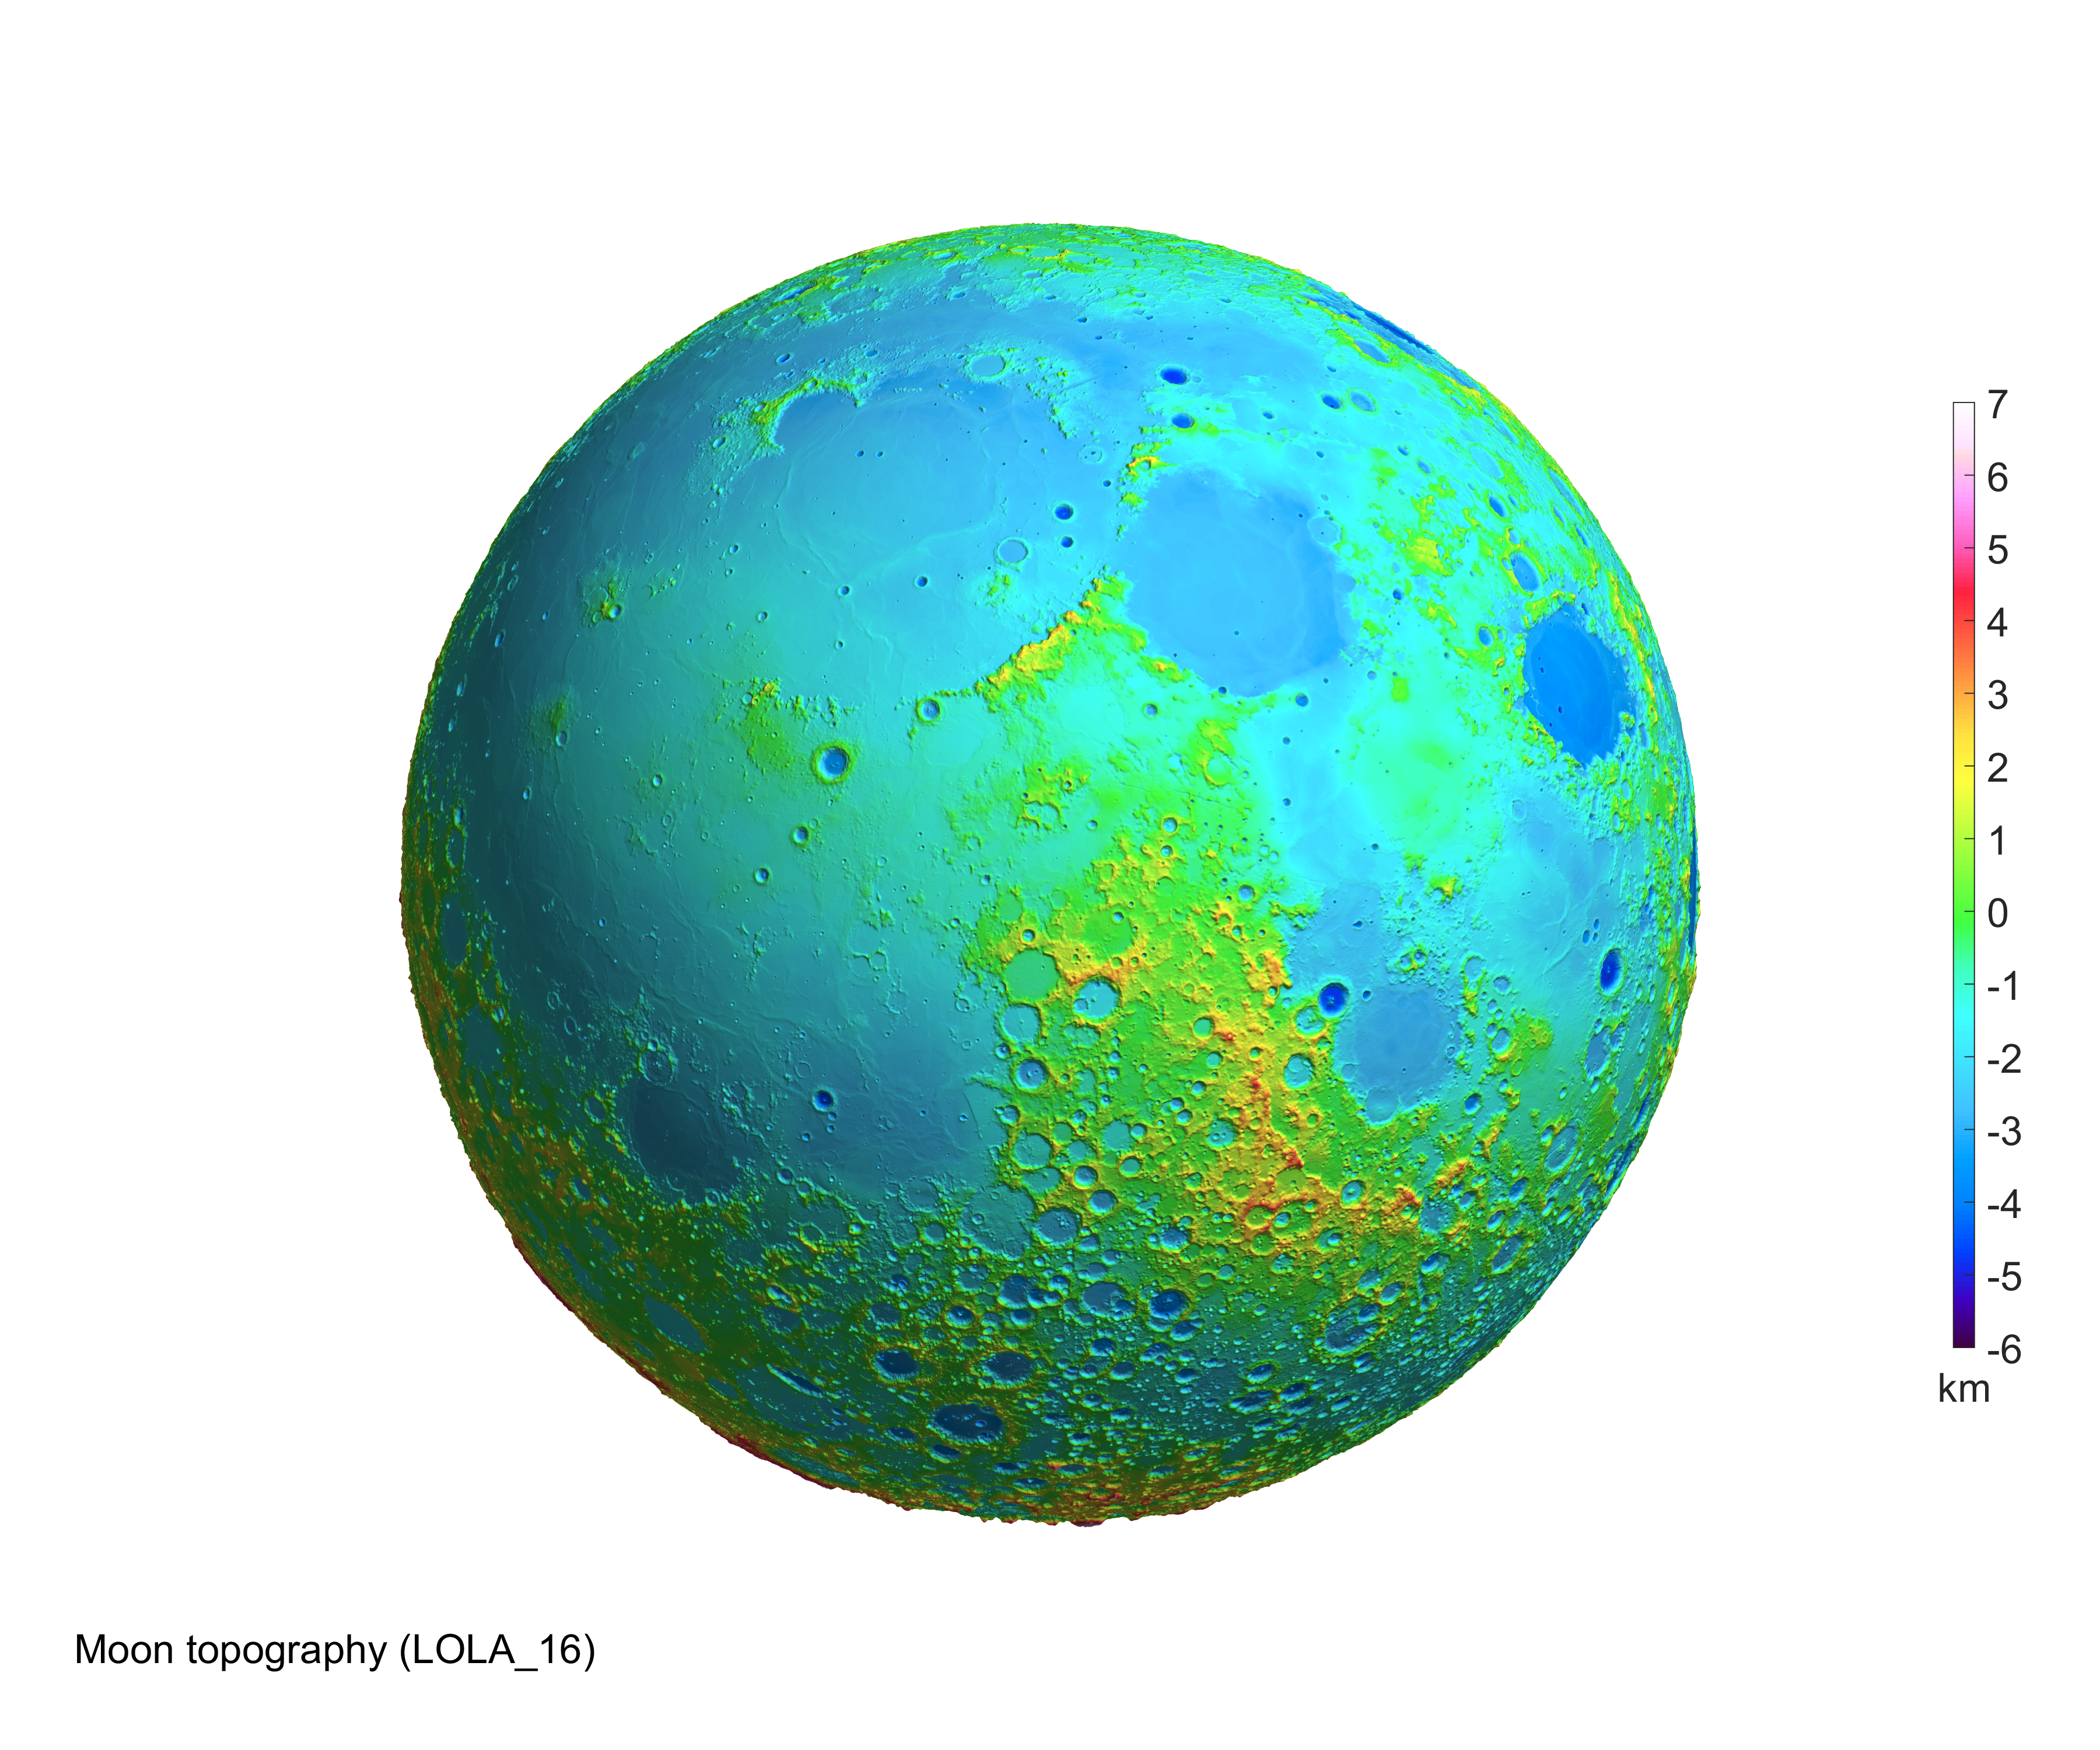 ASU – MATLAB script for 3D visualizing geodata on a rotating